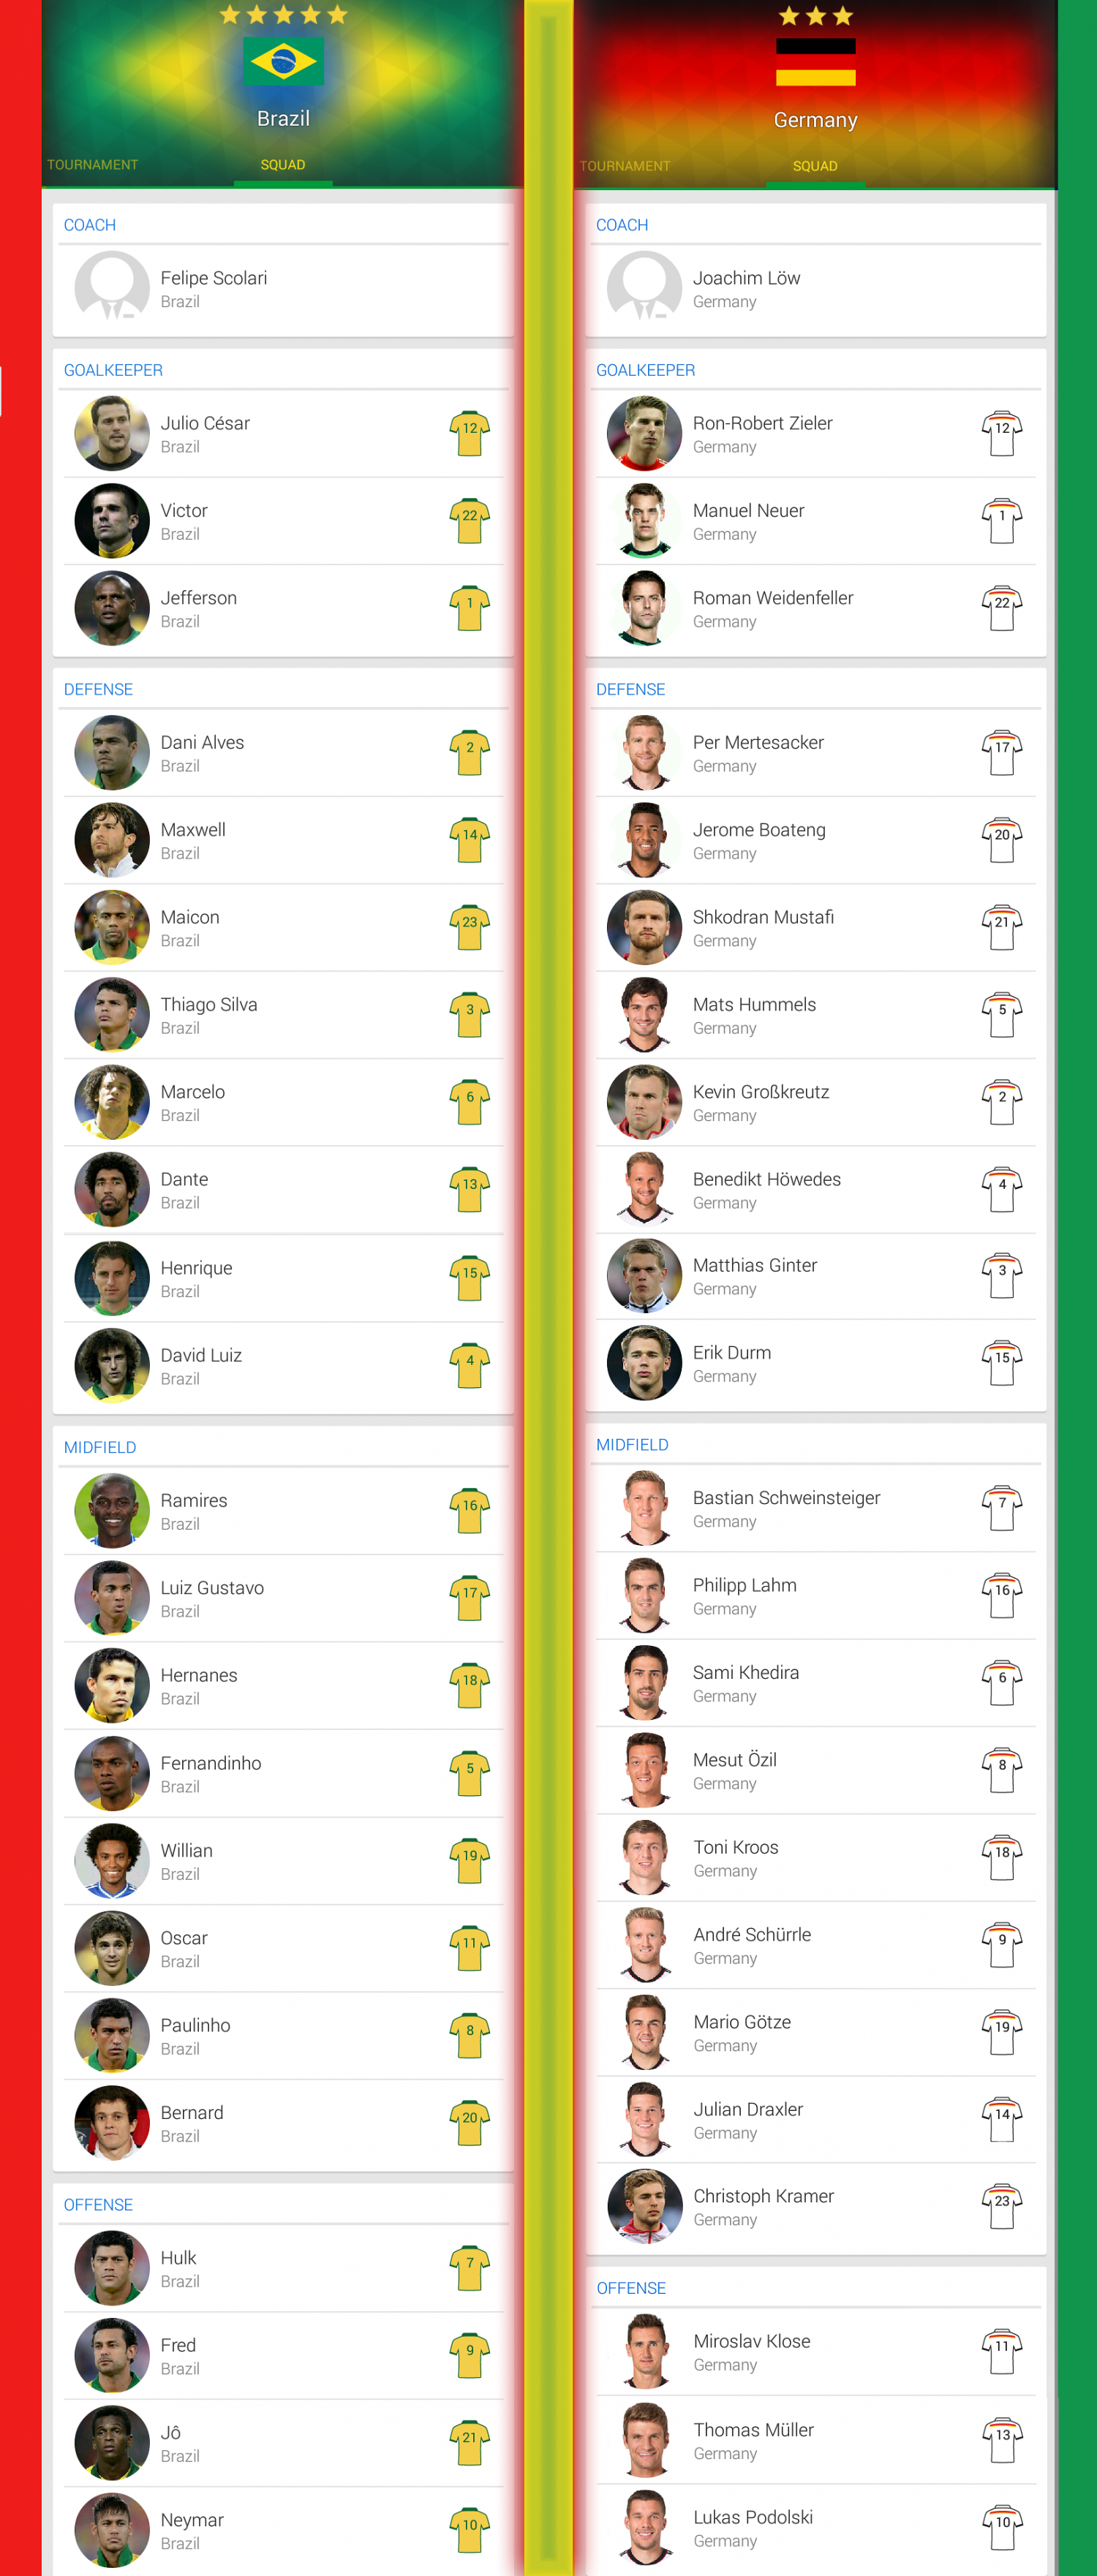 FIFA 2014 - Brazil vs Germany Squad members Infographic